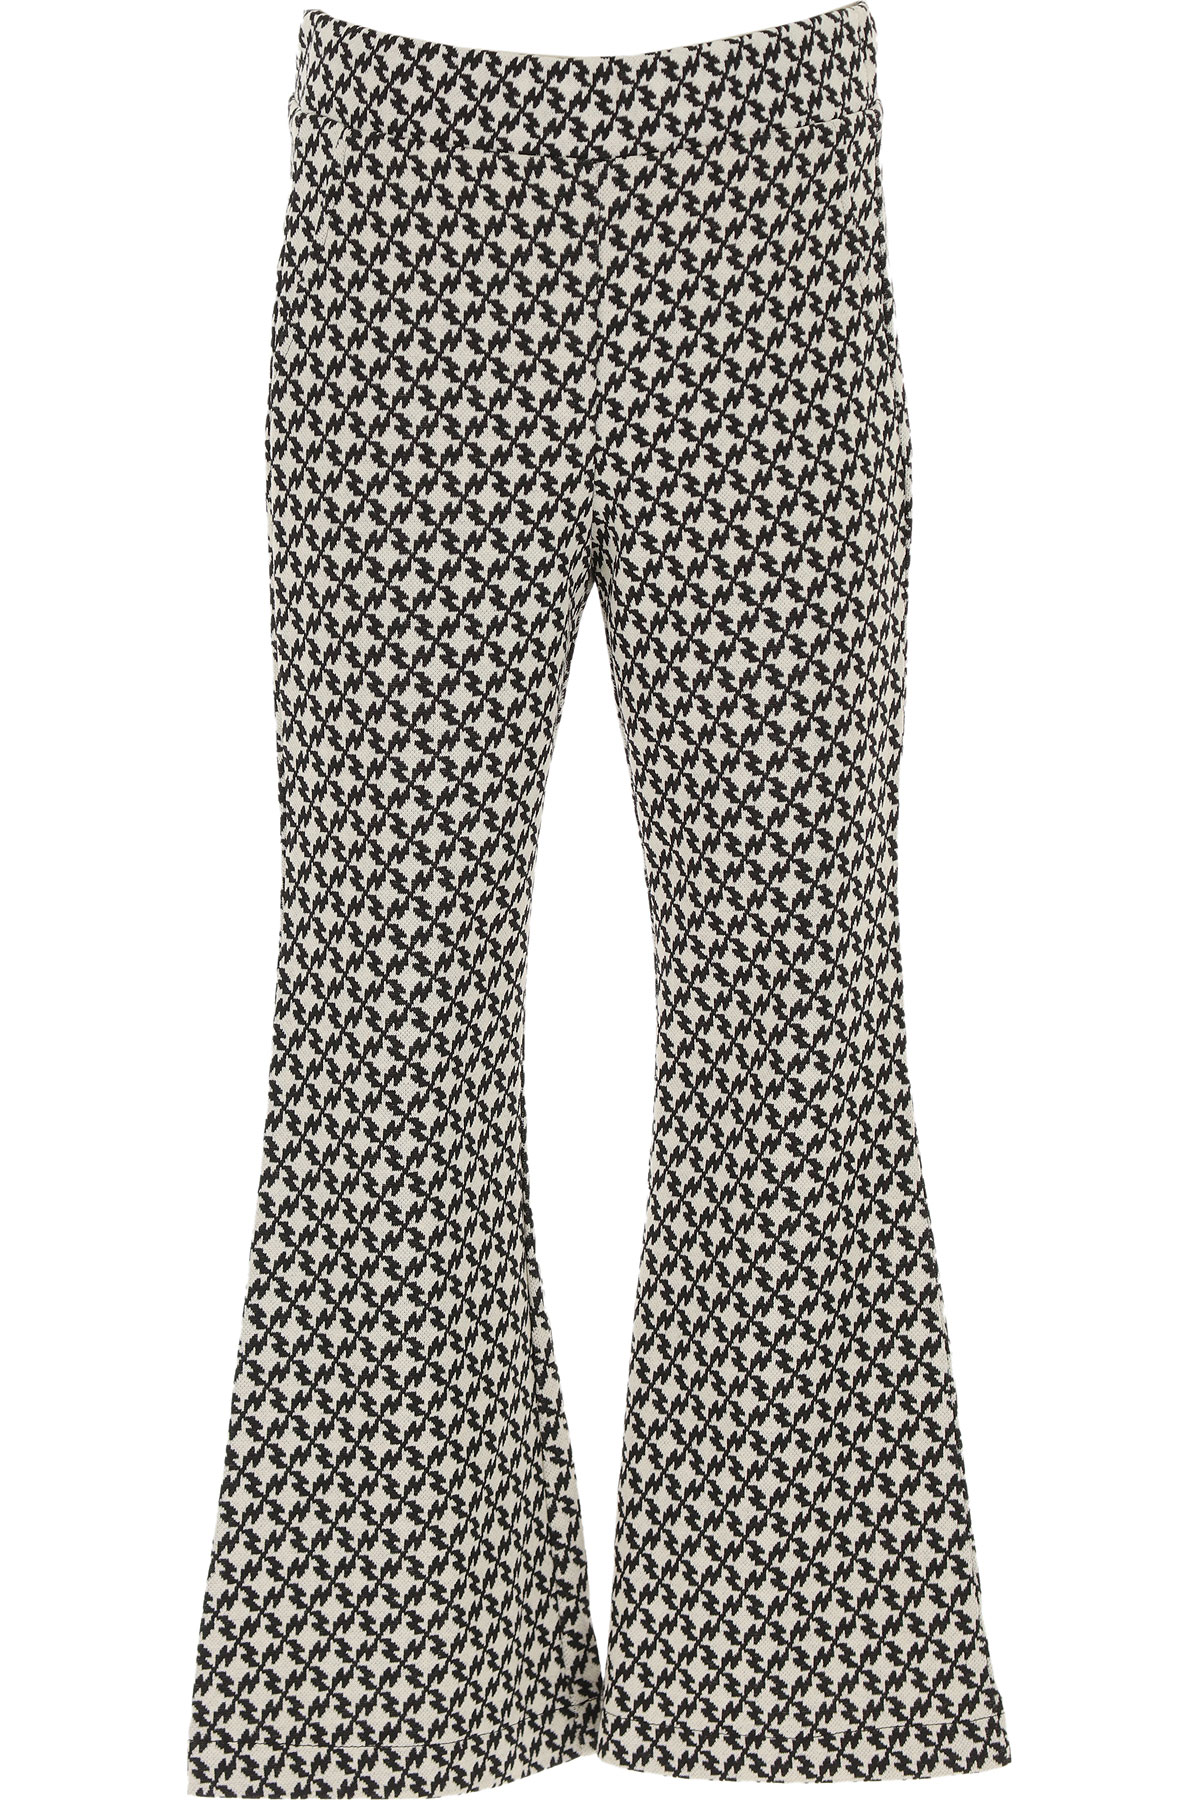 Dixie Kids Pants for Girls On Sale, White, polyester, 2019, S XL